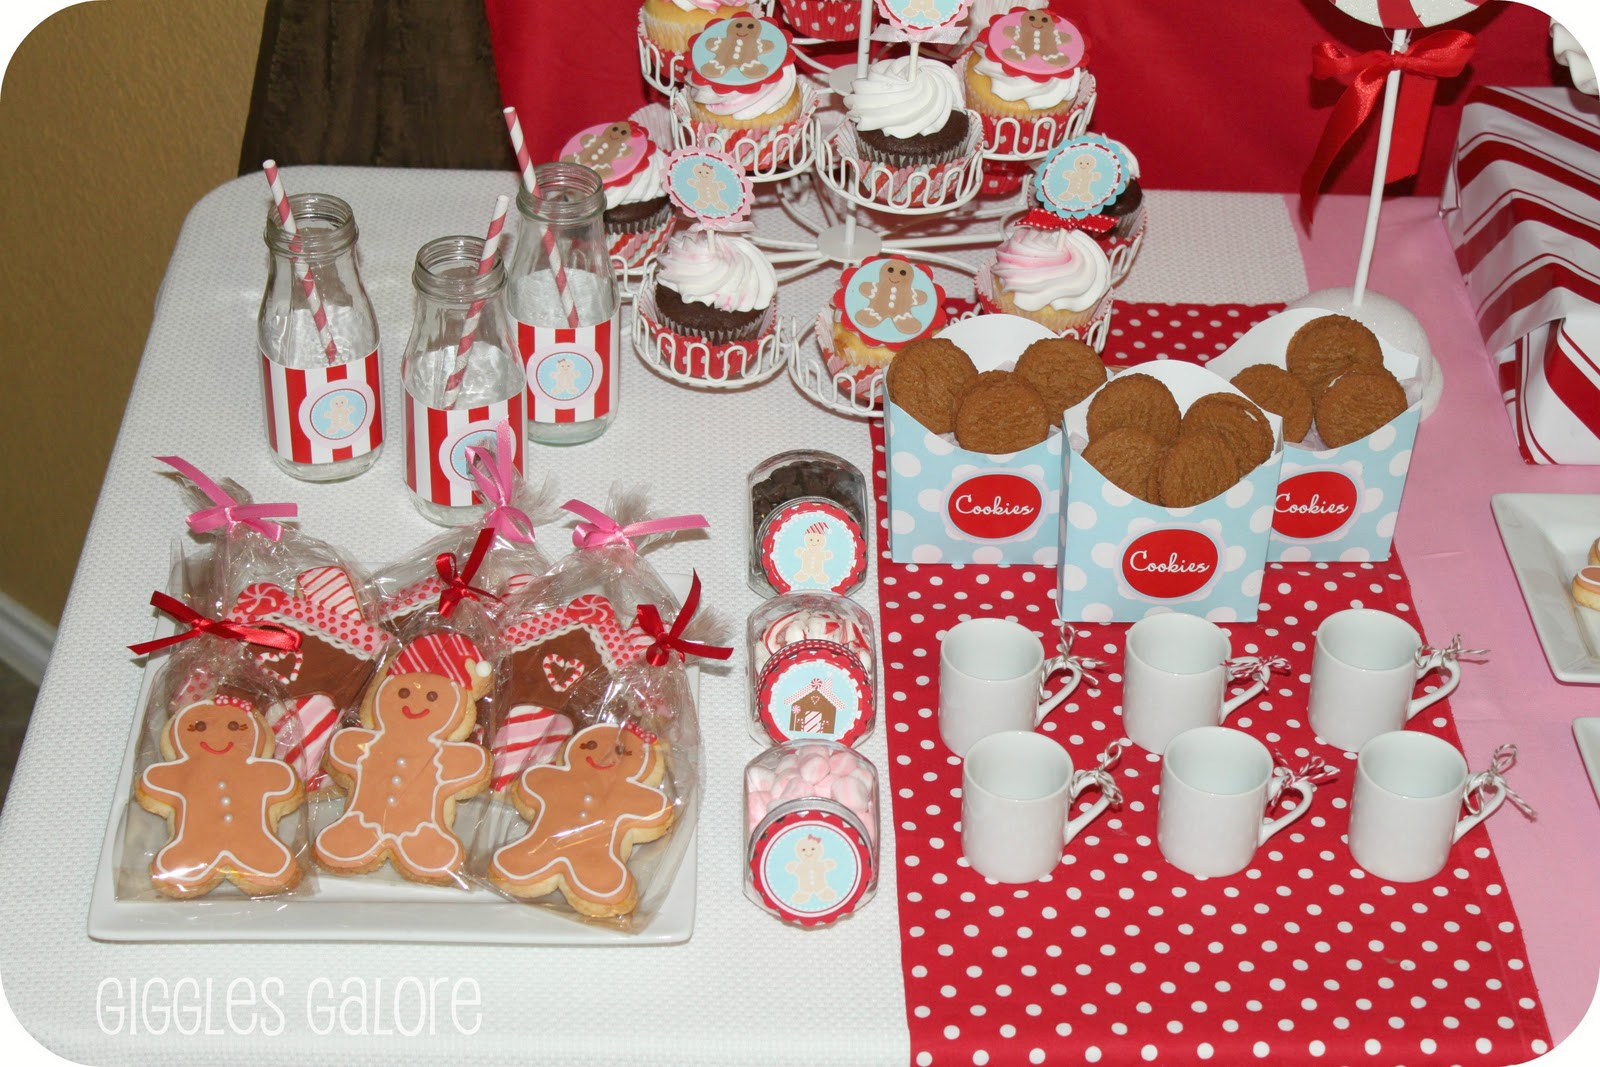 Gingerbread house decorating party giggles galore for Gingerbread house decorating ideas